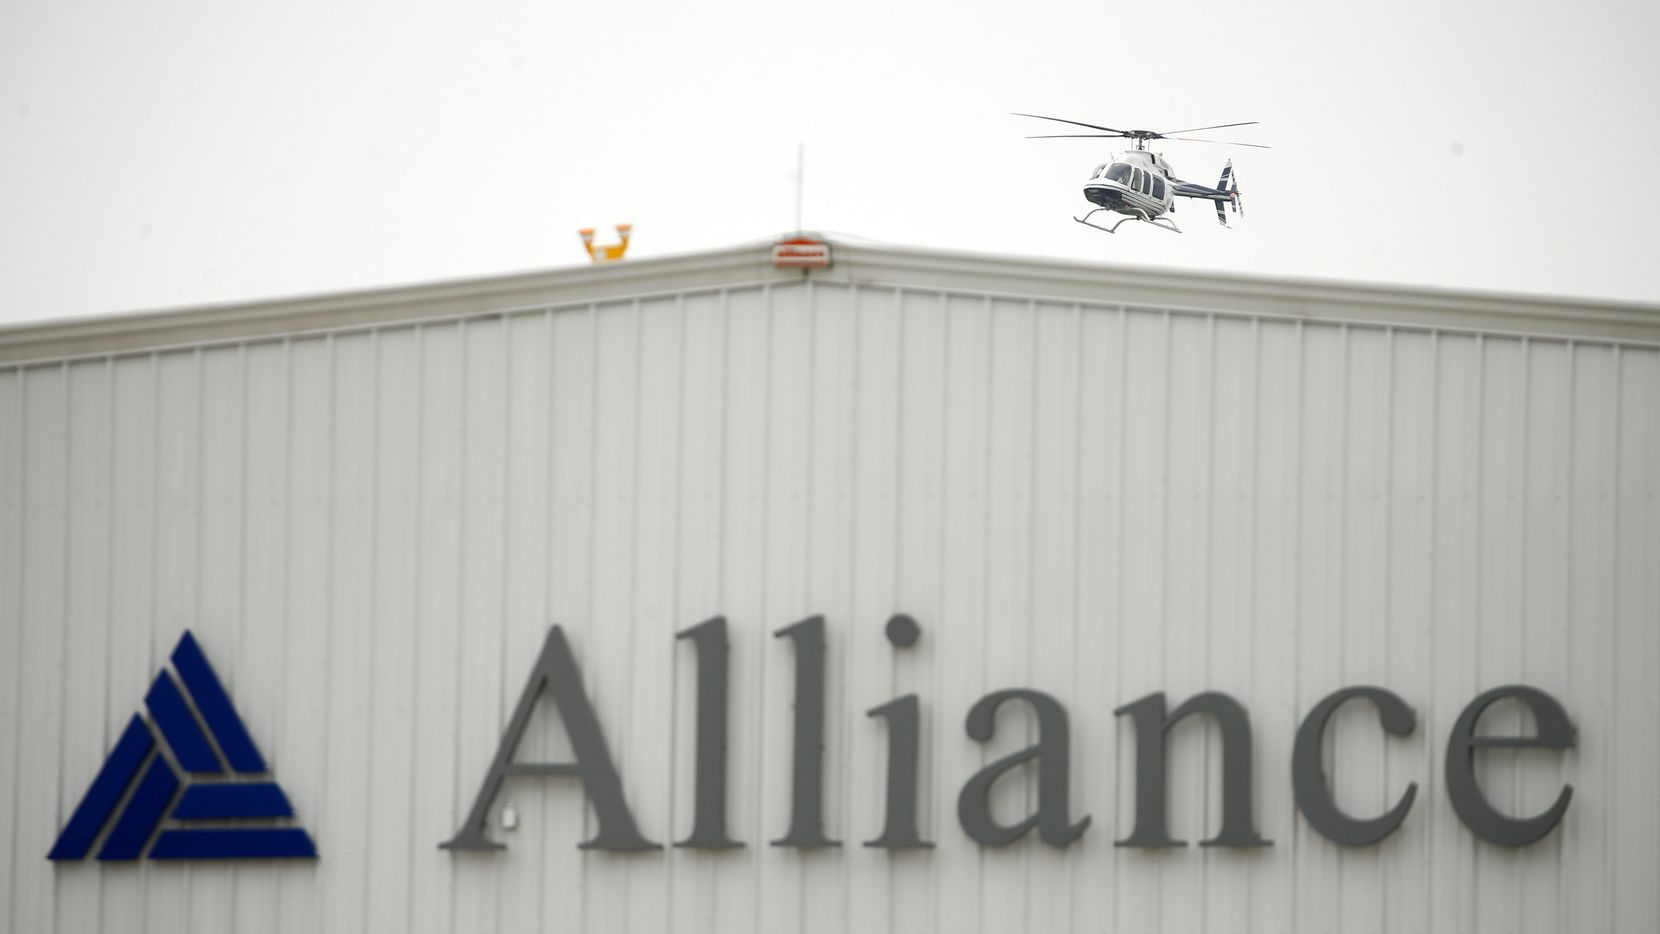 Acting Secretary of Homeland Security Chad Wolf received a helicopter tour around the Alliance Airport area in Fort Worth by Ross Perot, Jr, Thursday, May 21 2020.  (Tom Fox/The Dallas Morning News)